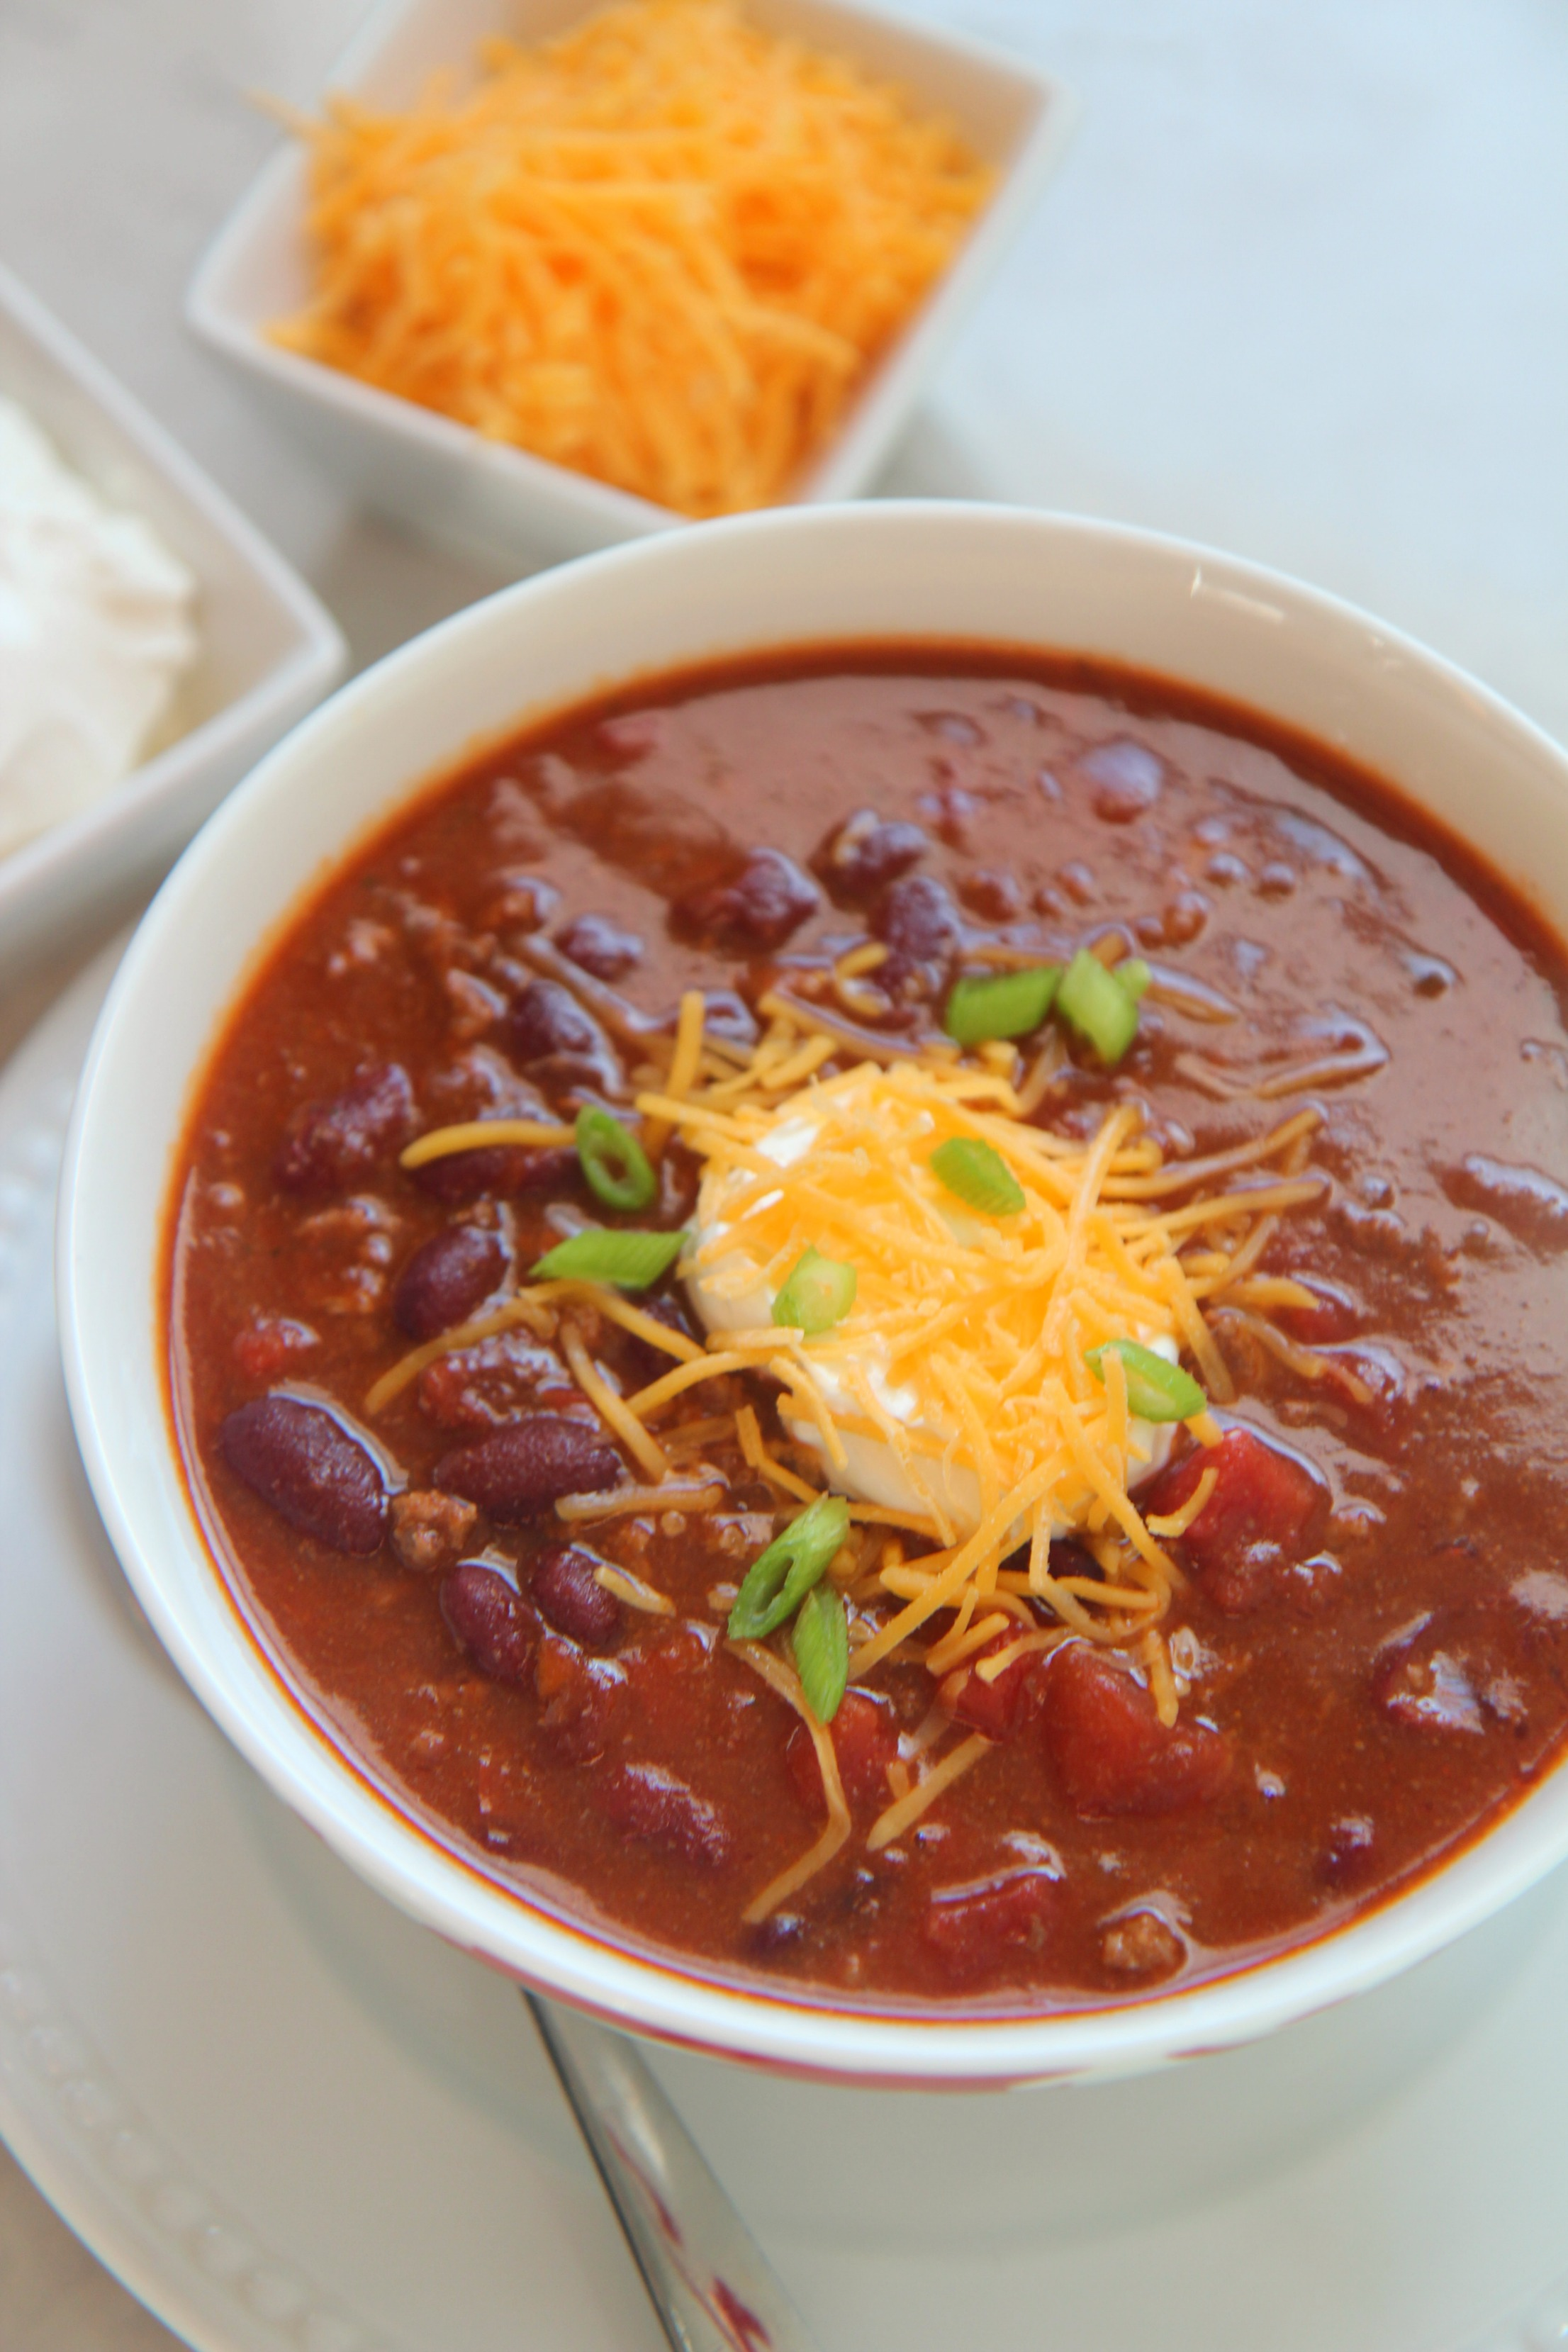 Chili with sour cream, cheddar cheese, and scallions in a white bowl with a spoon, cheese, and sour cream on the side.